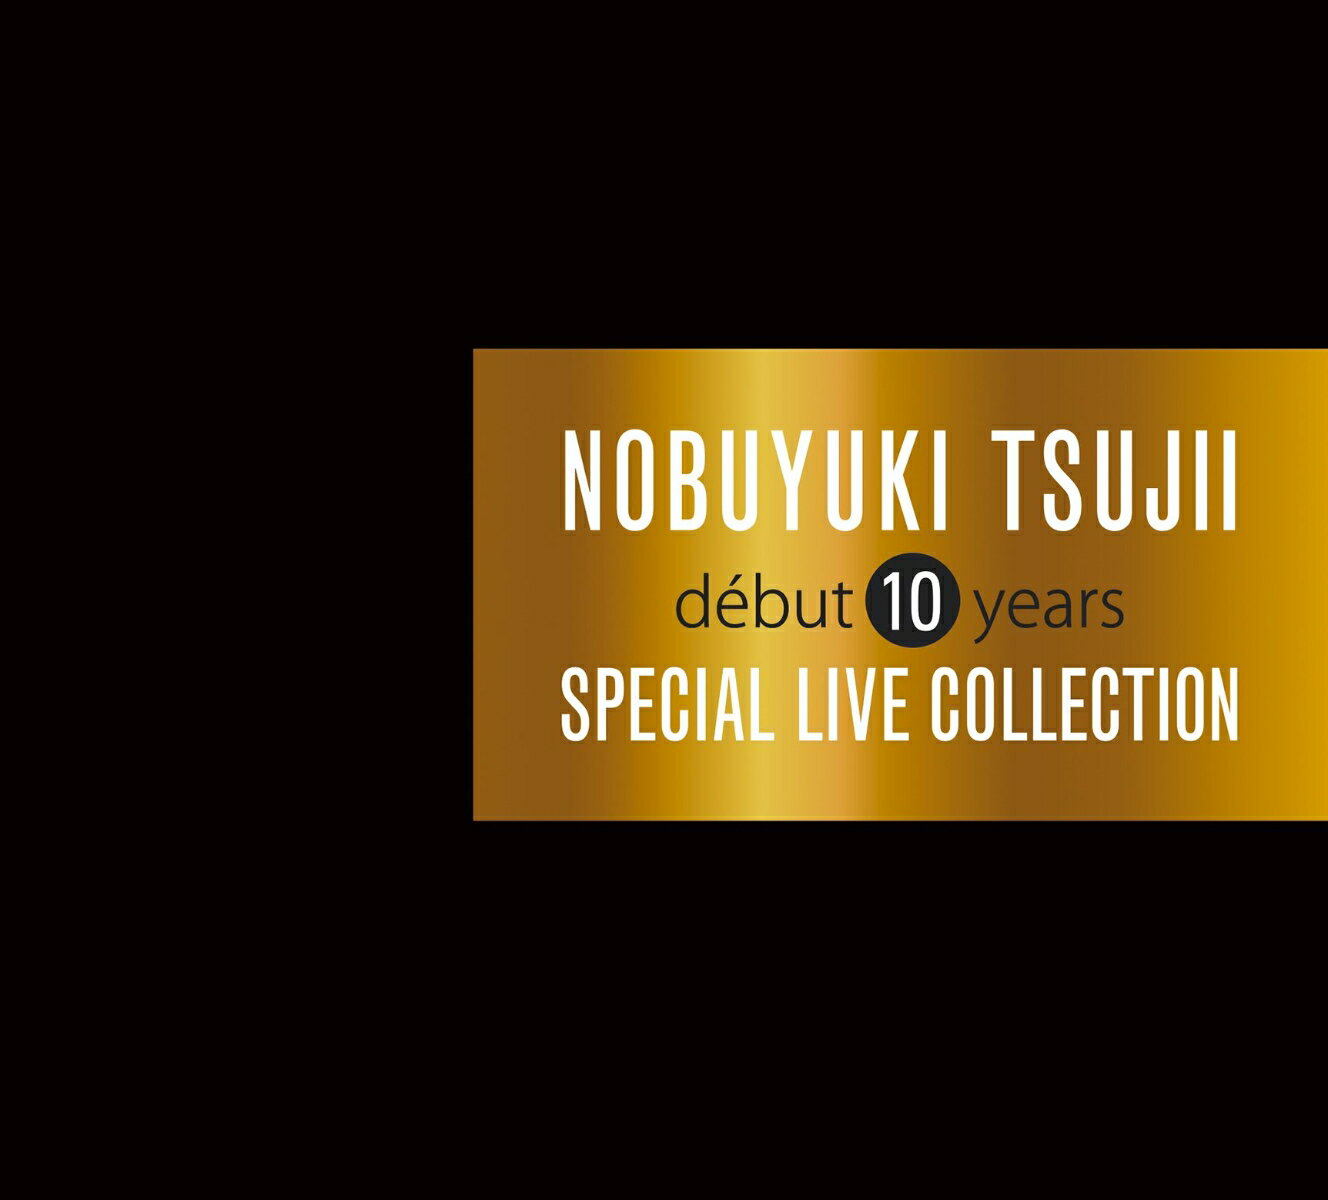 Debut 10 years Special Live Collection [ 辻井伸行 ]